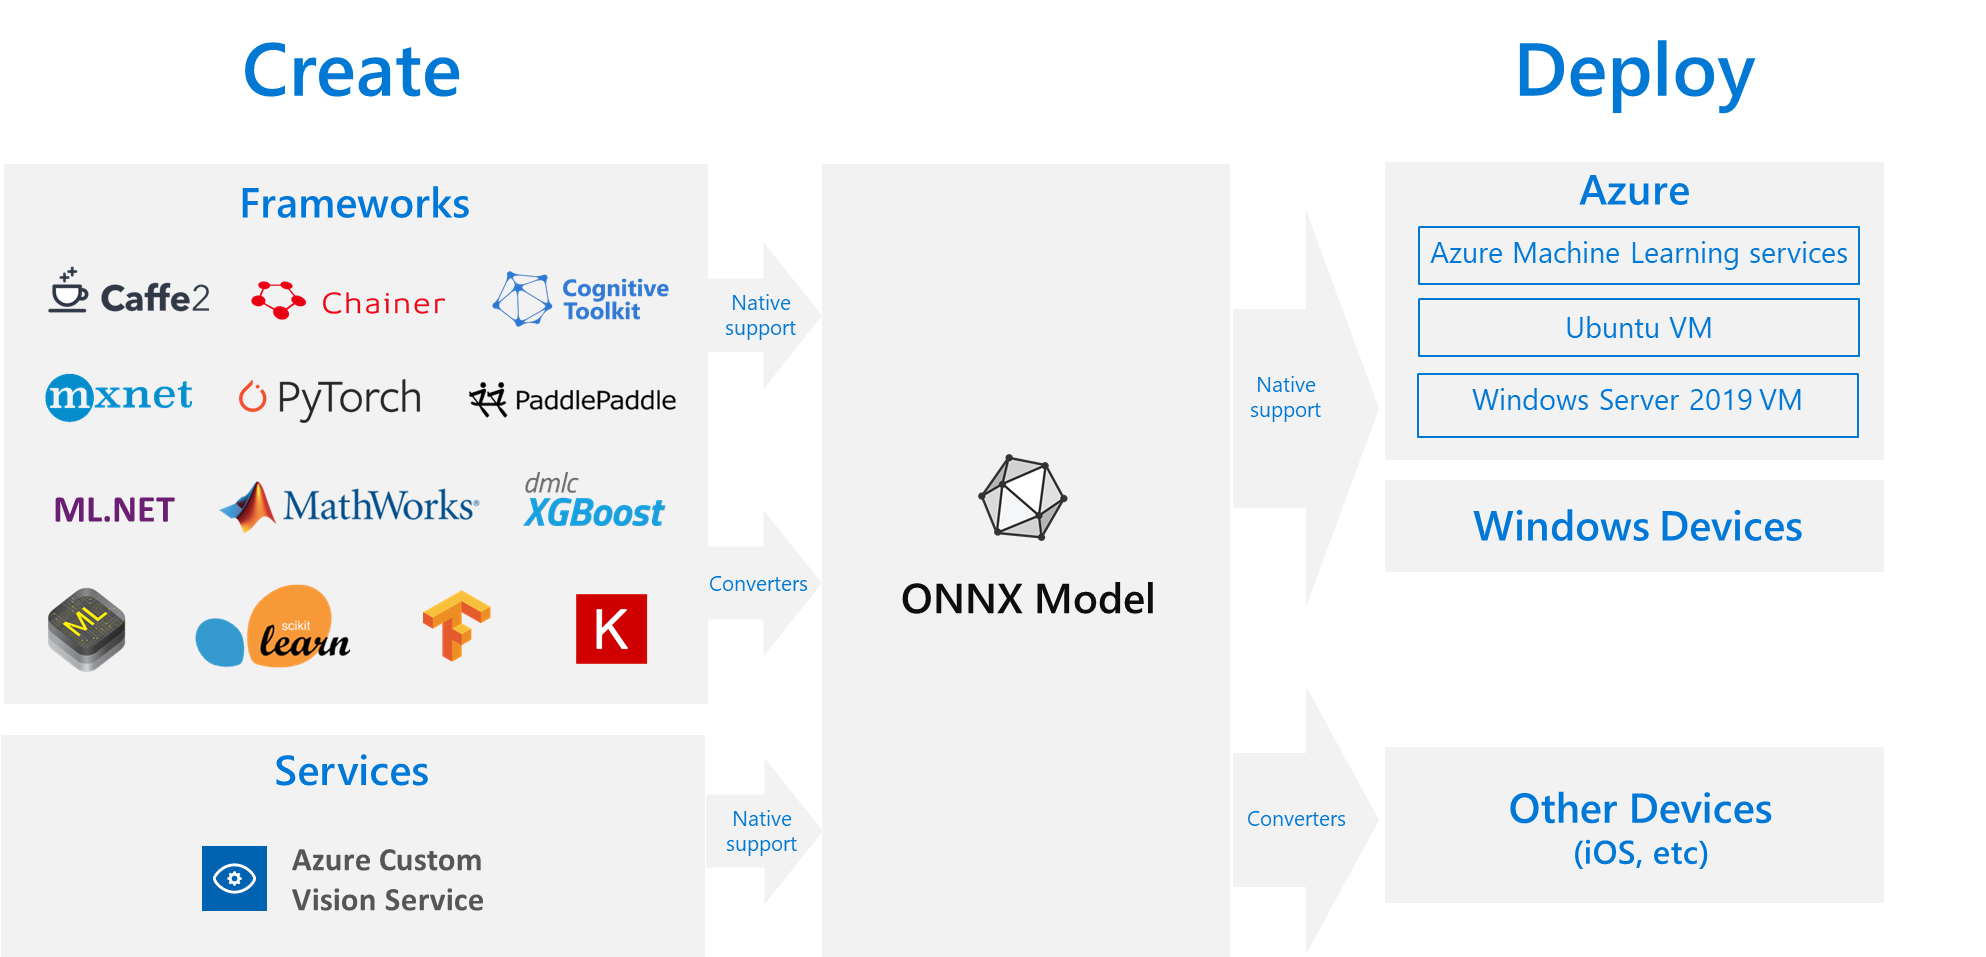 High performance, cross platform inference with ONNX - Azure